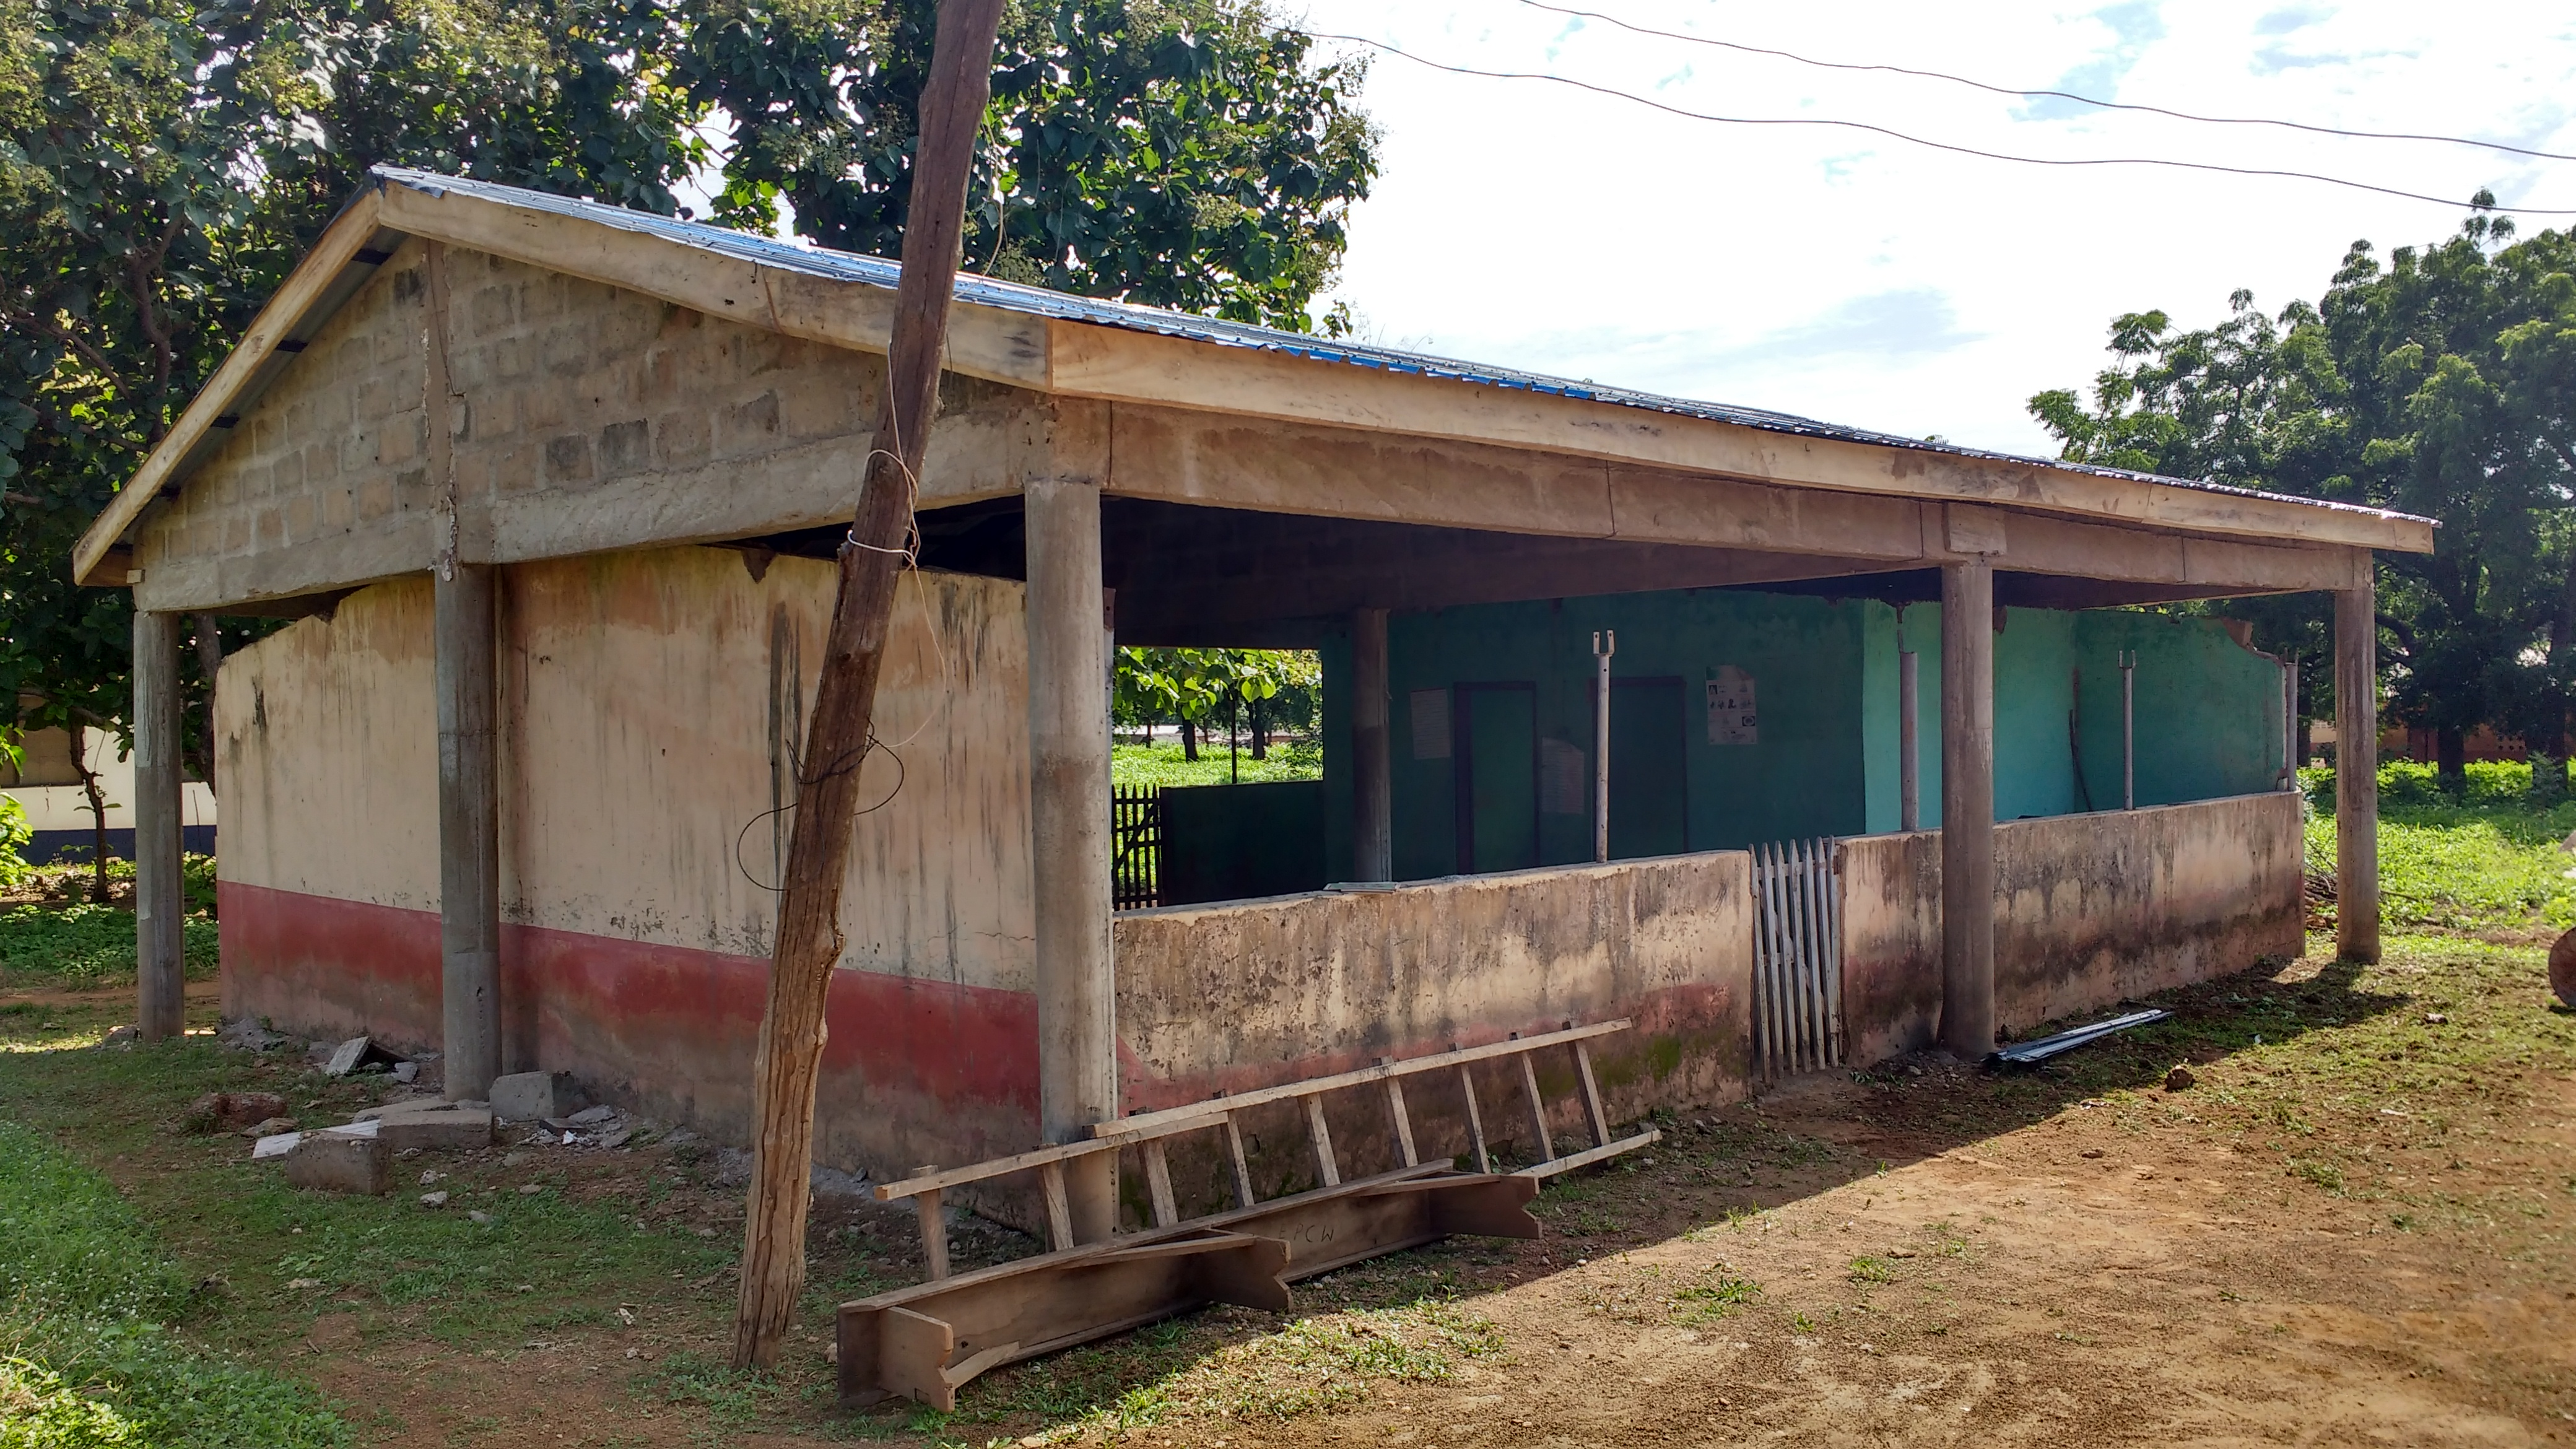 Construction to expand the maternity ward at Wapuli Clinic, funded by Lake Erie (Pennsylvania) Presbytery.